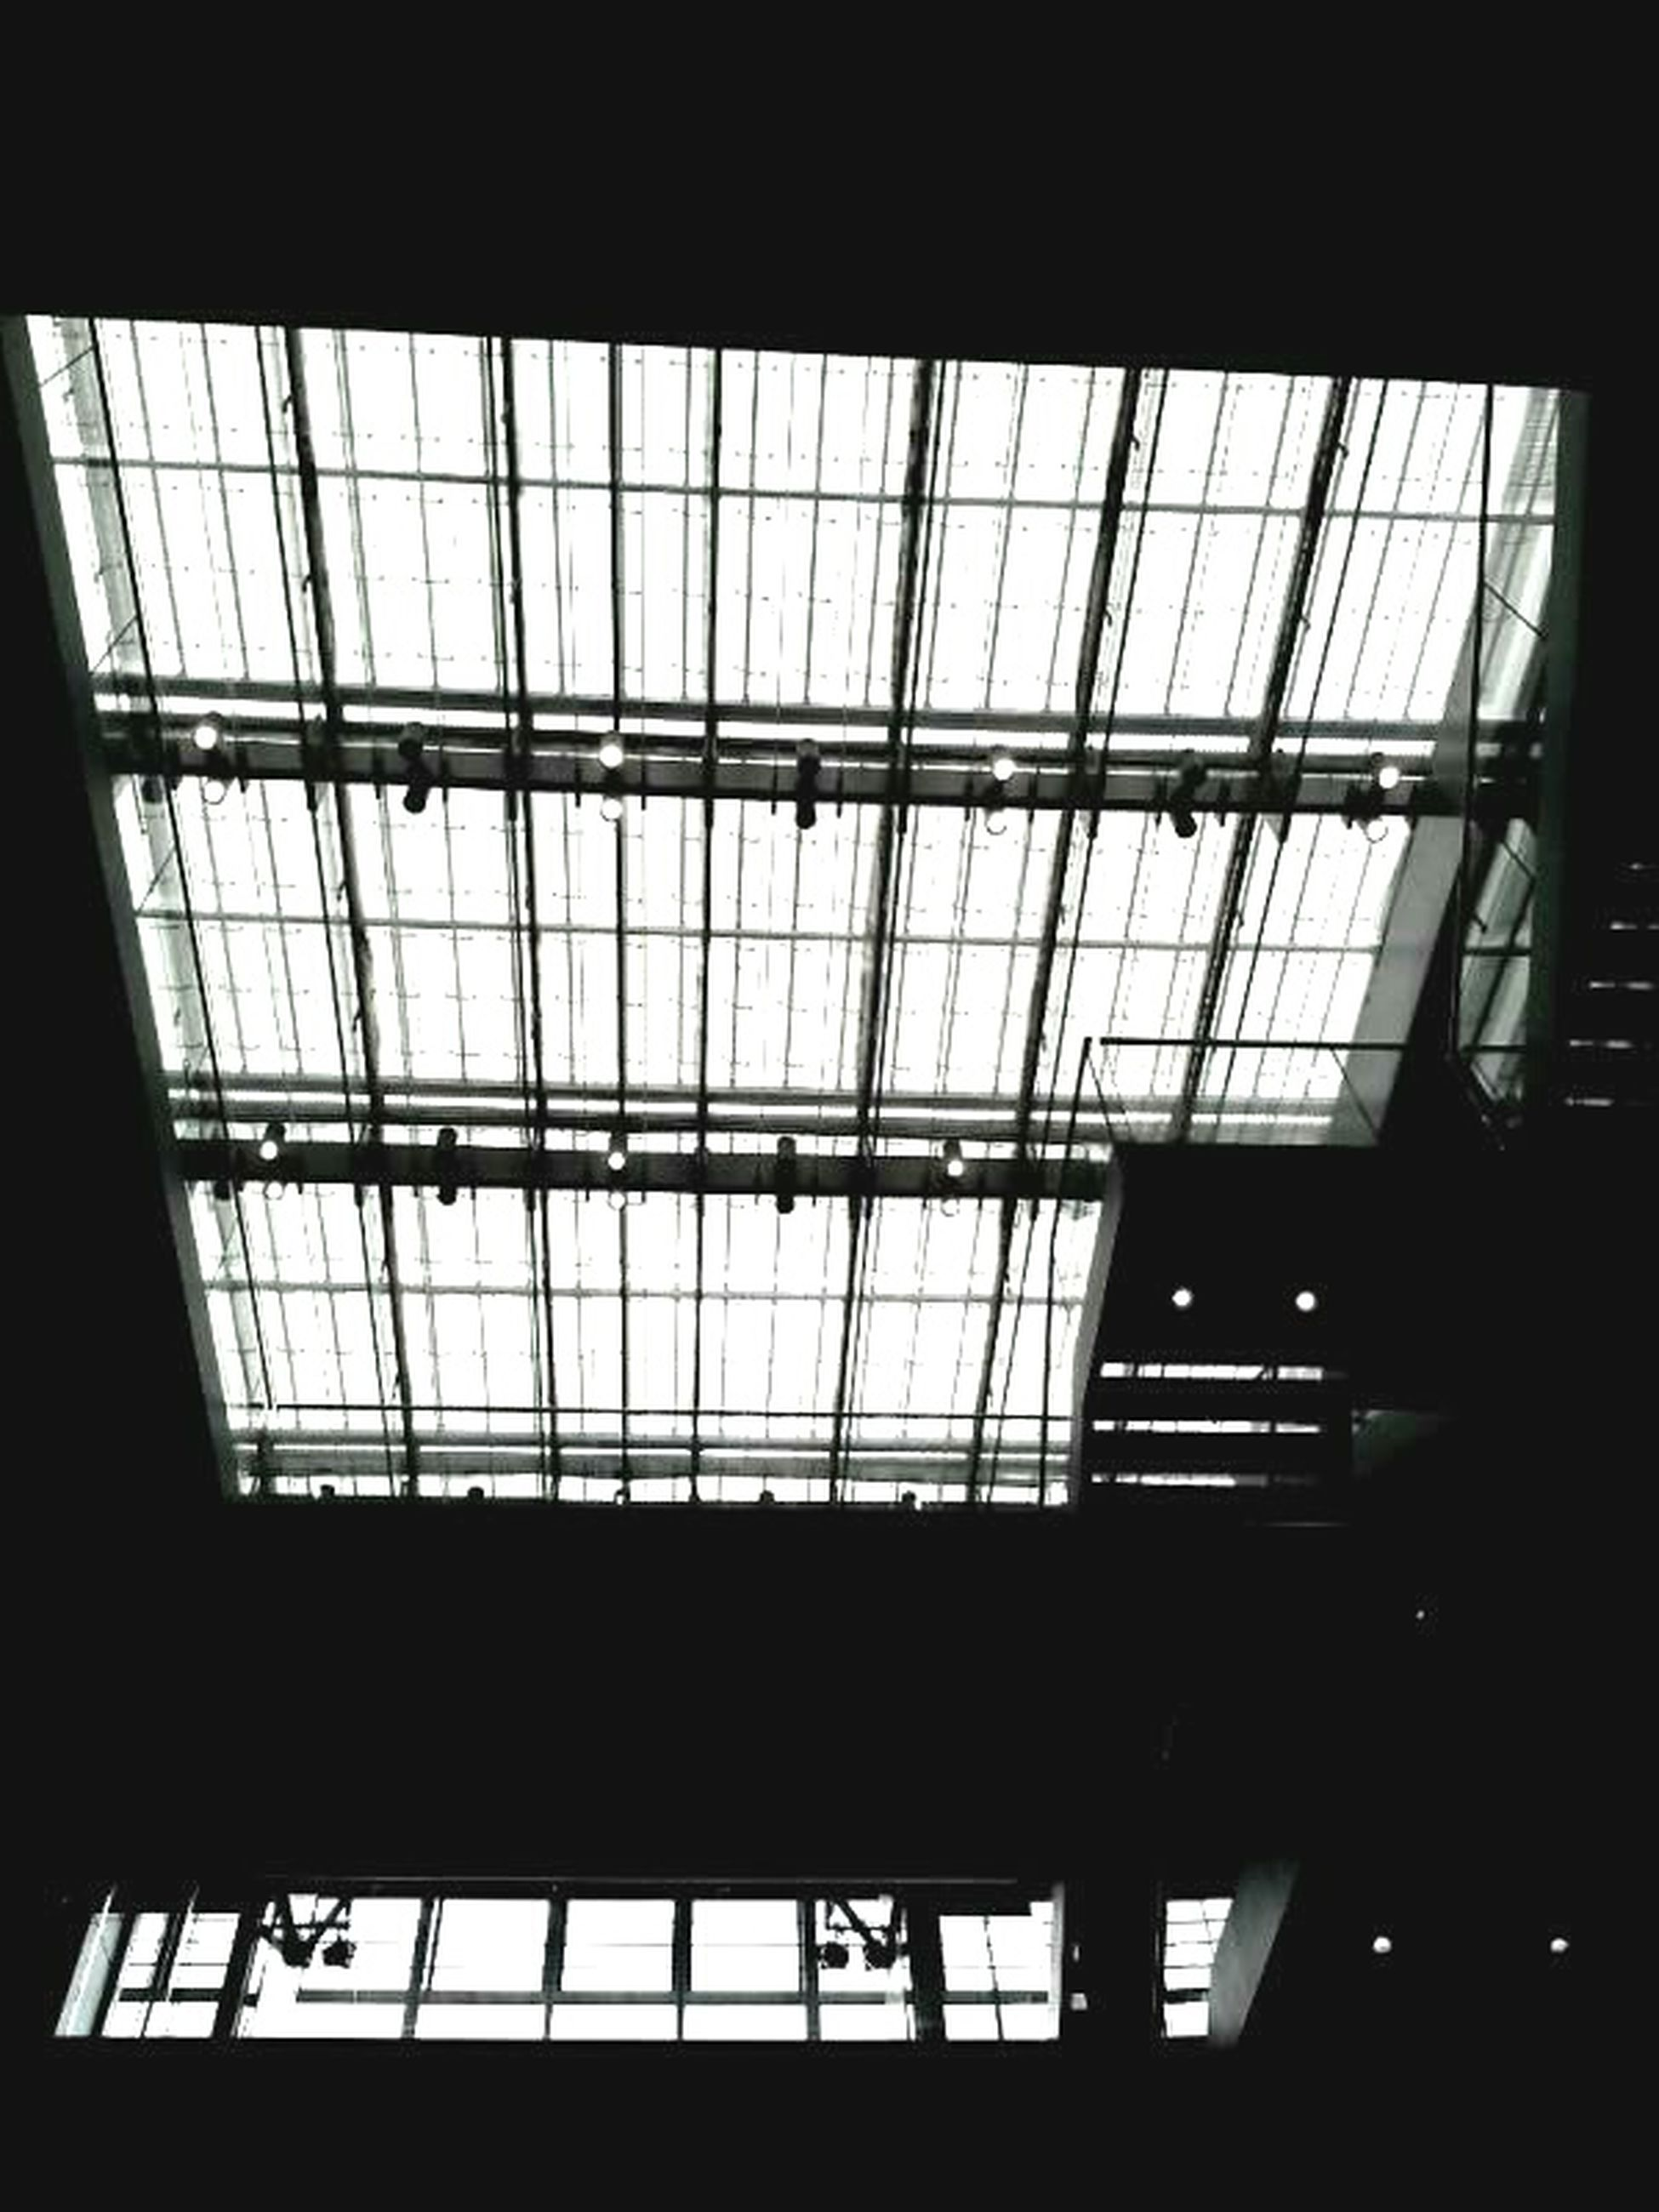 indoors, window, architecture, built structure, glass - material, transparent, ceiling, low angle view, skylight, building, glass, modern, geometric shape, no people, day, pattern, building exterior, railing, interior, architectural feature